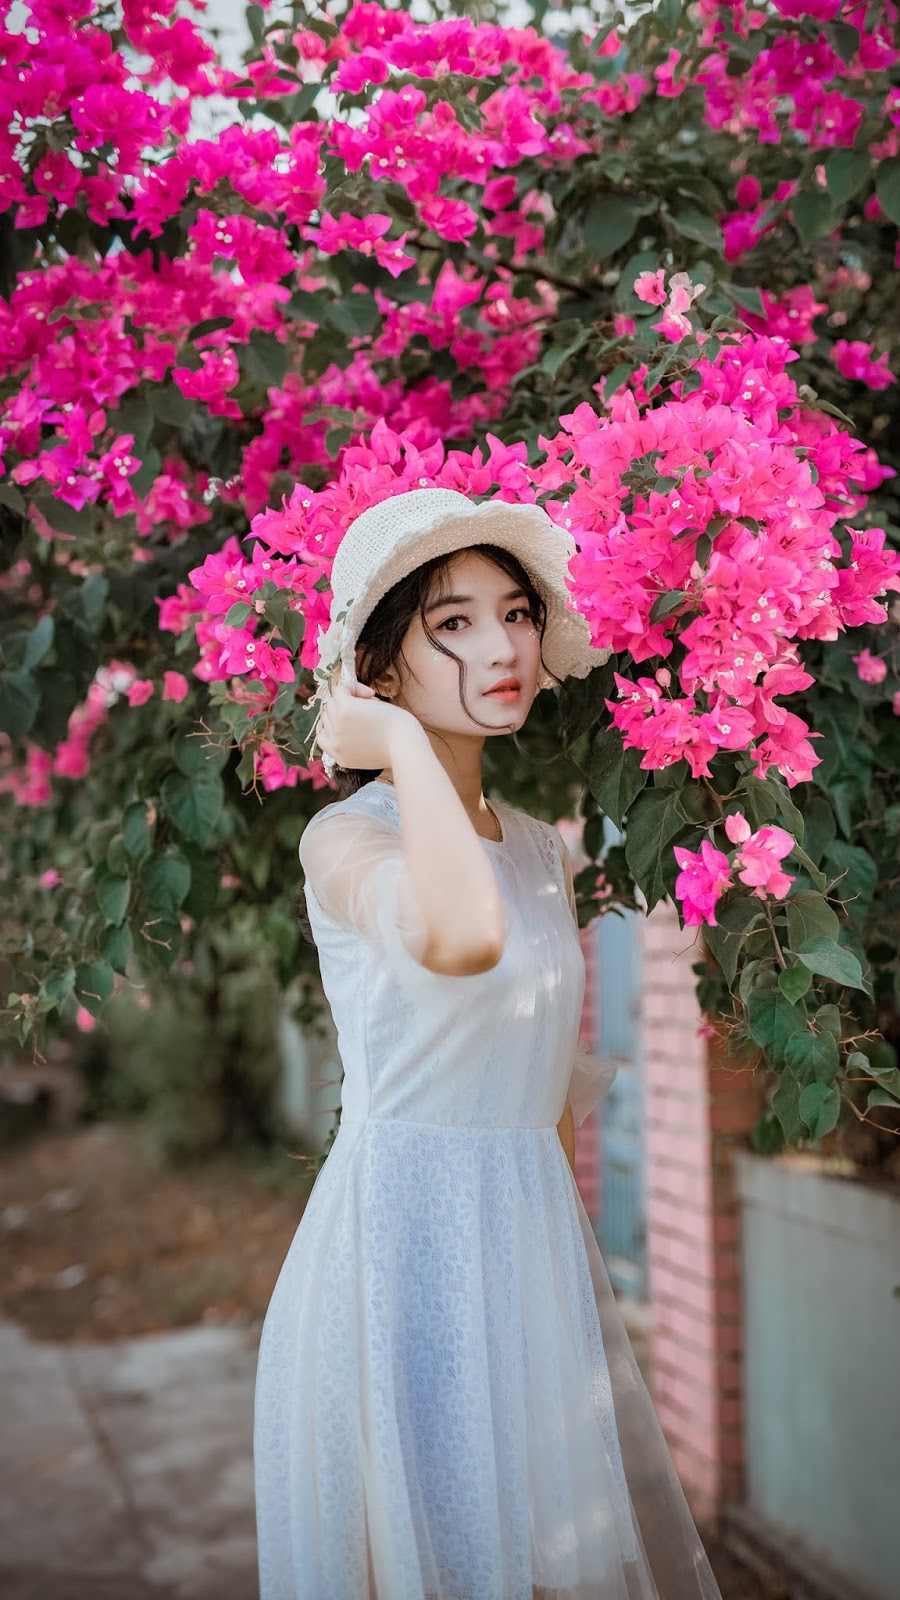 aesthetic .. women in pink flower